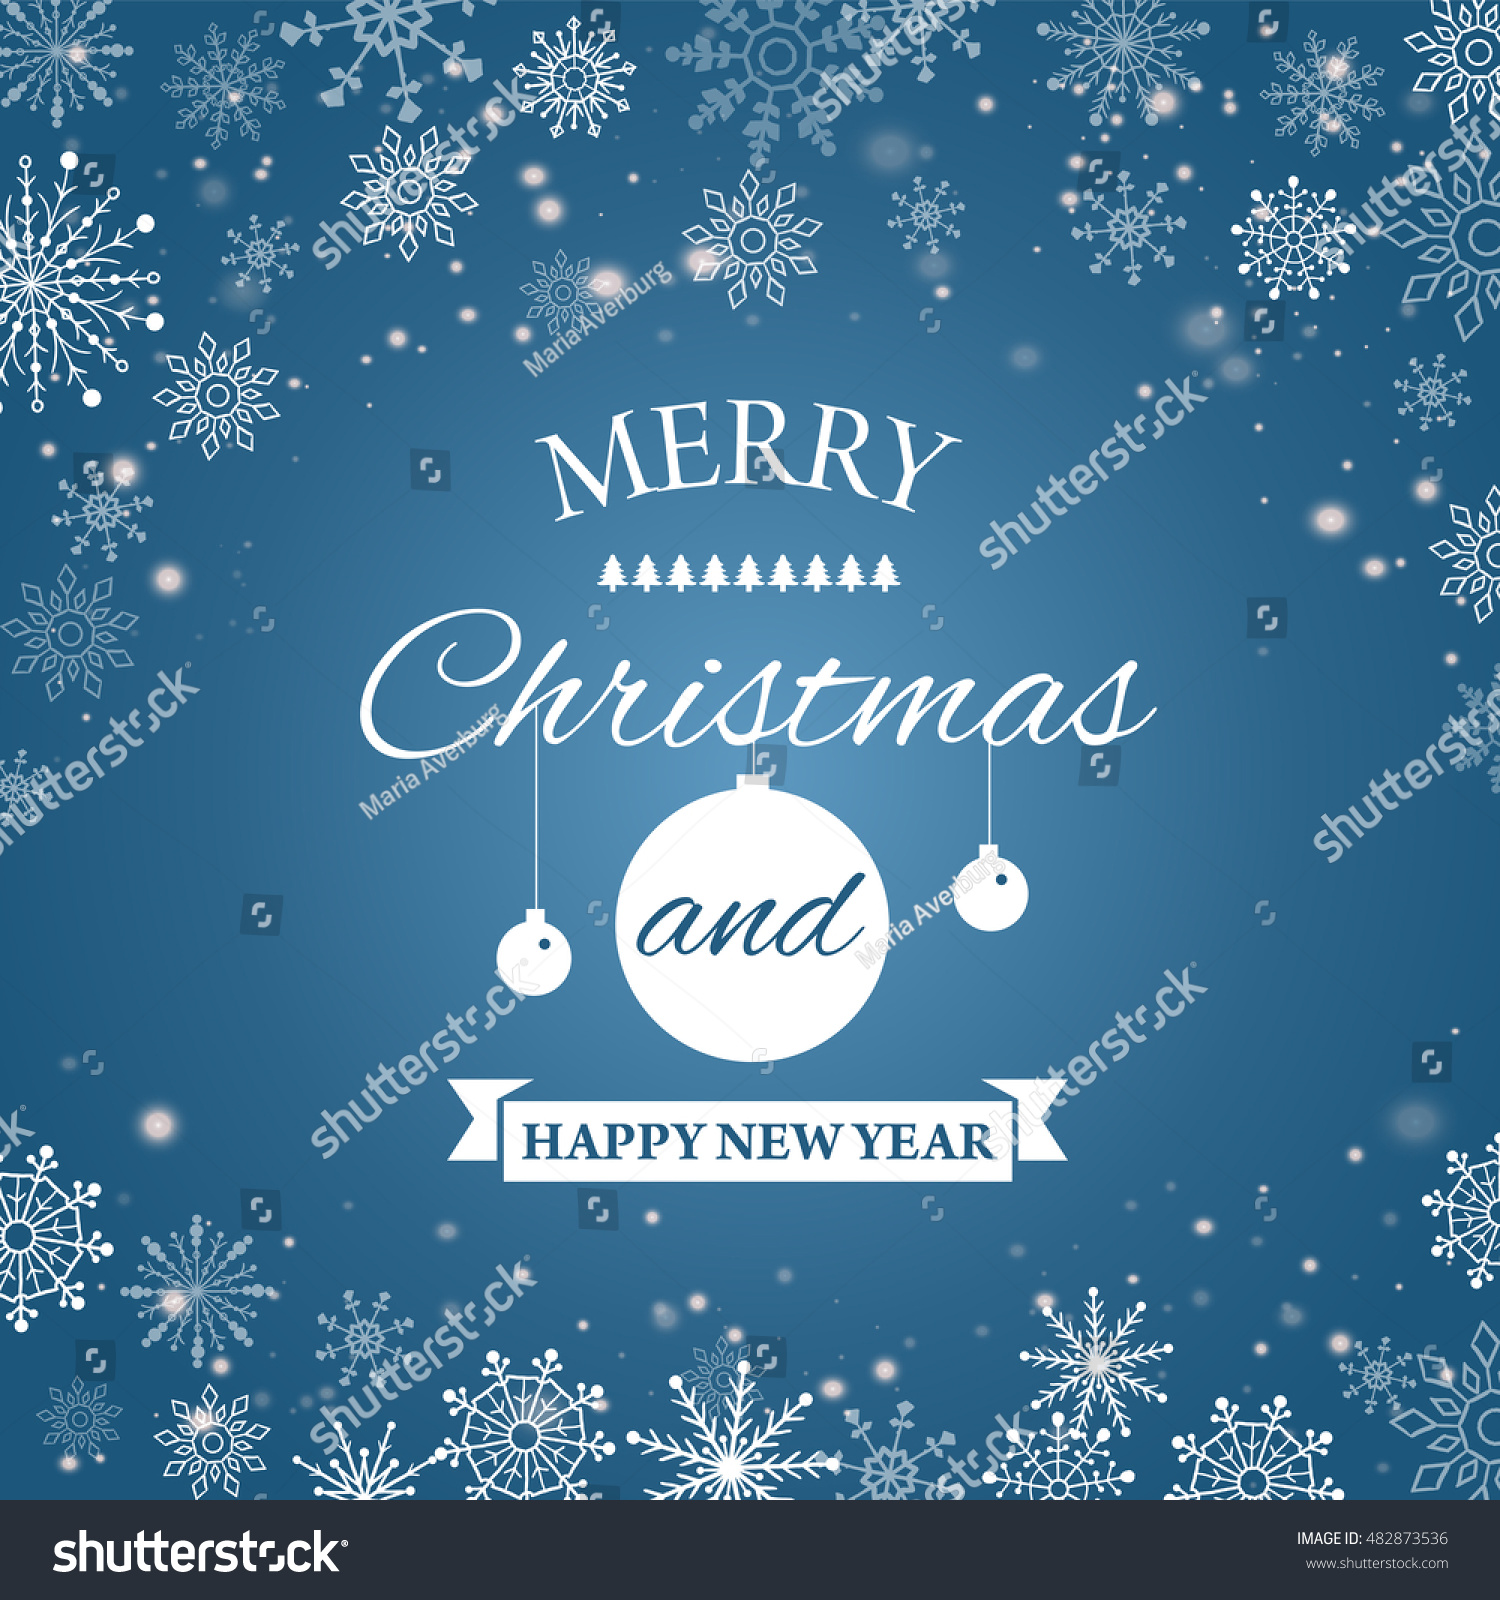 Ecard Happy New Year Merry Christmas Stock Vector Royalty Free